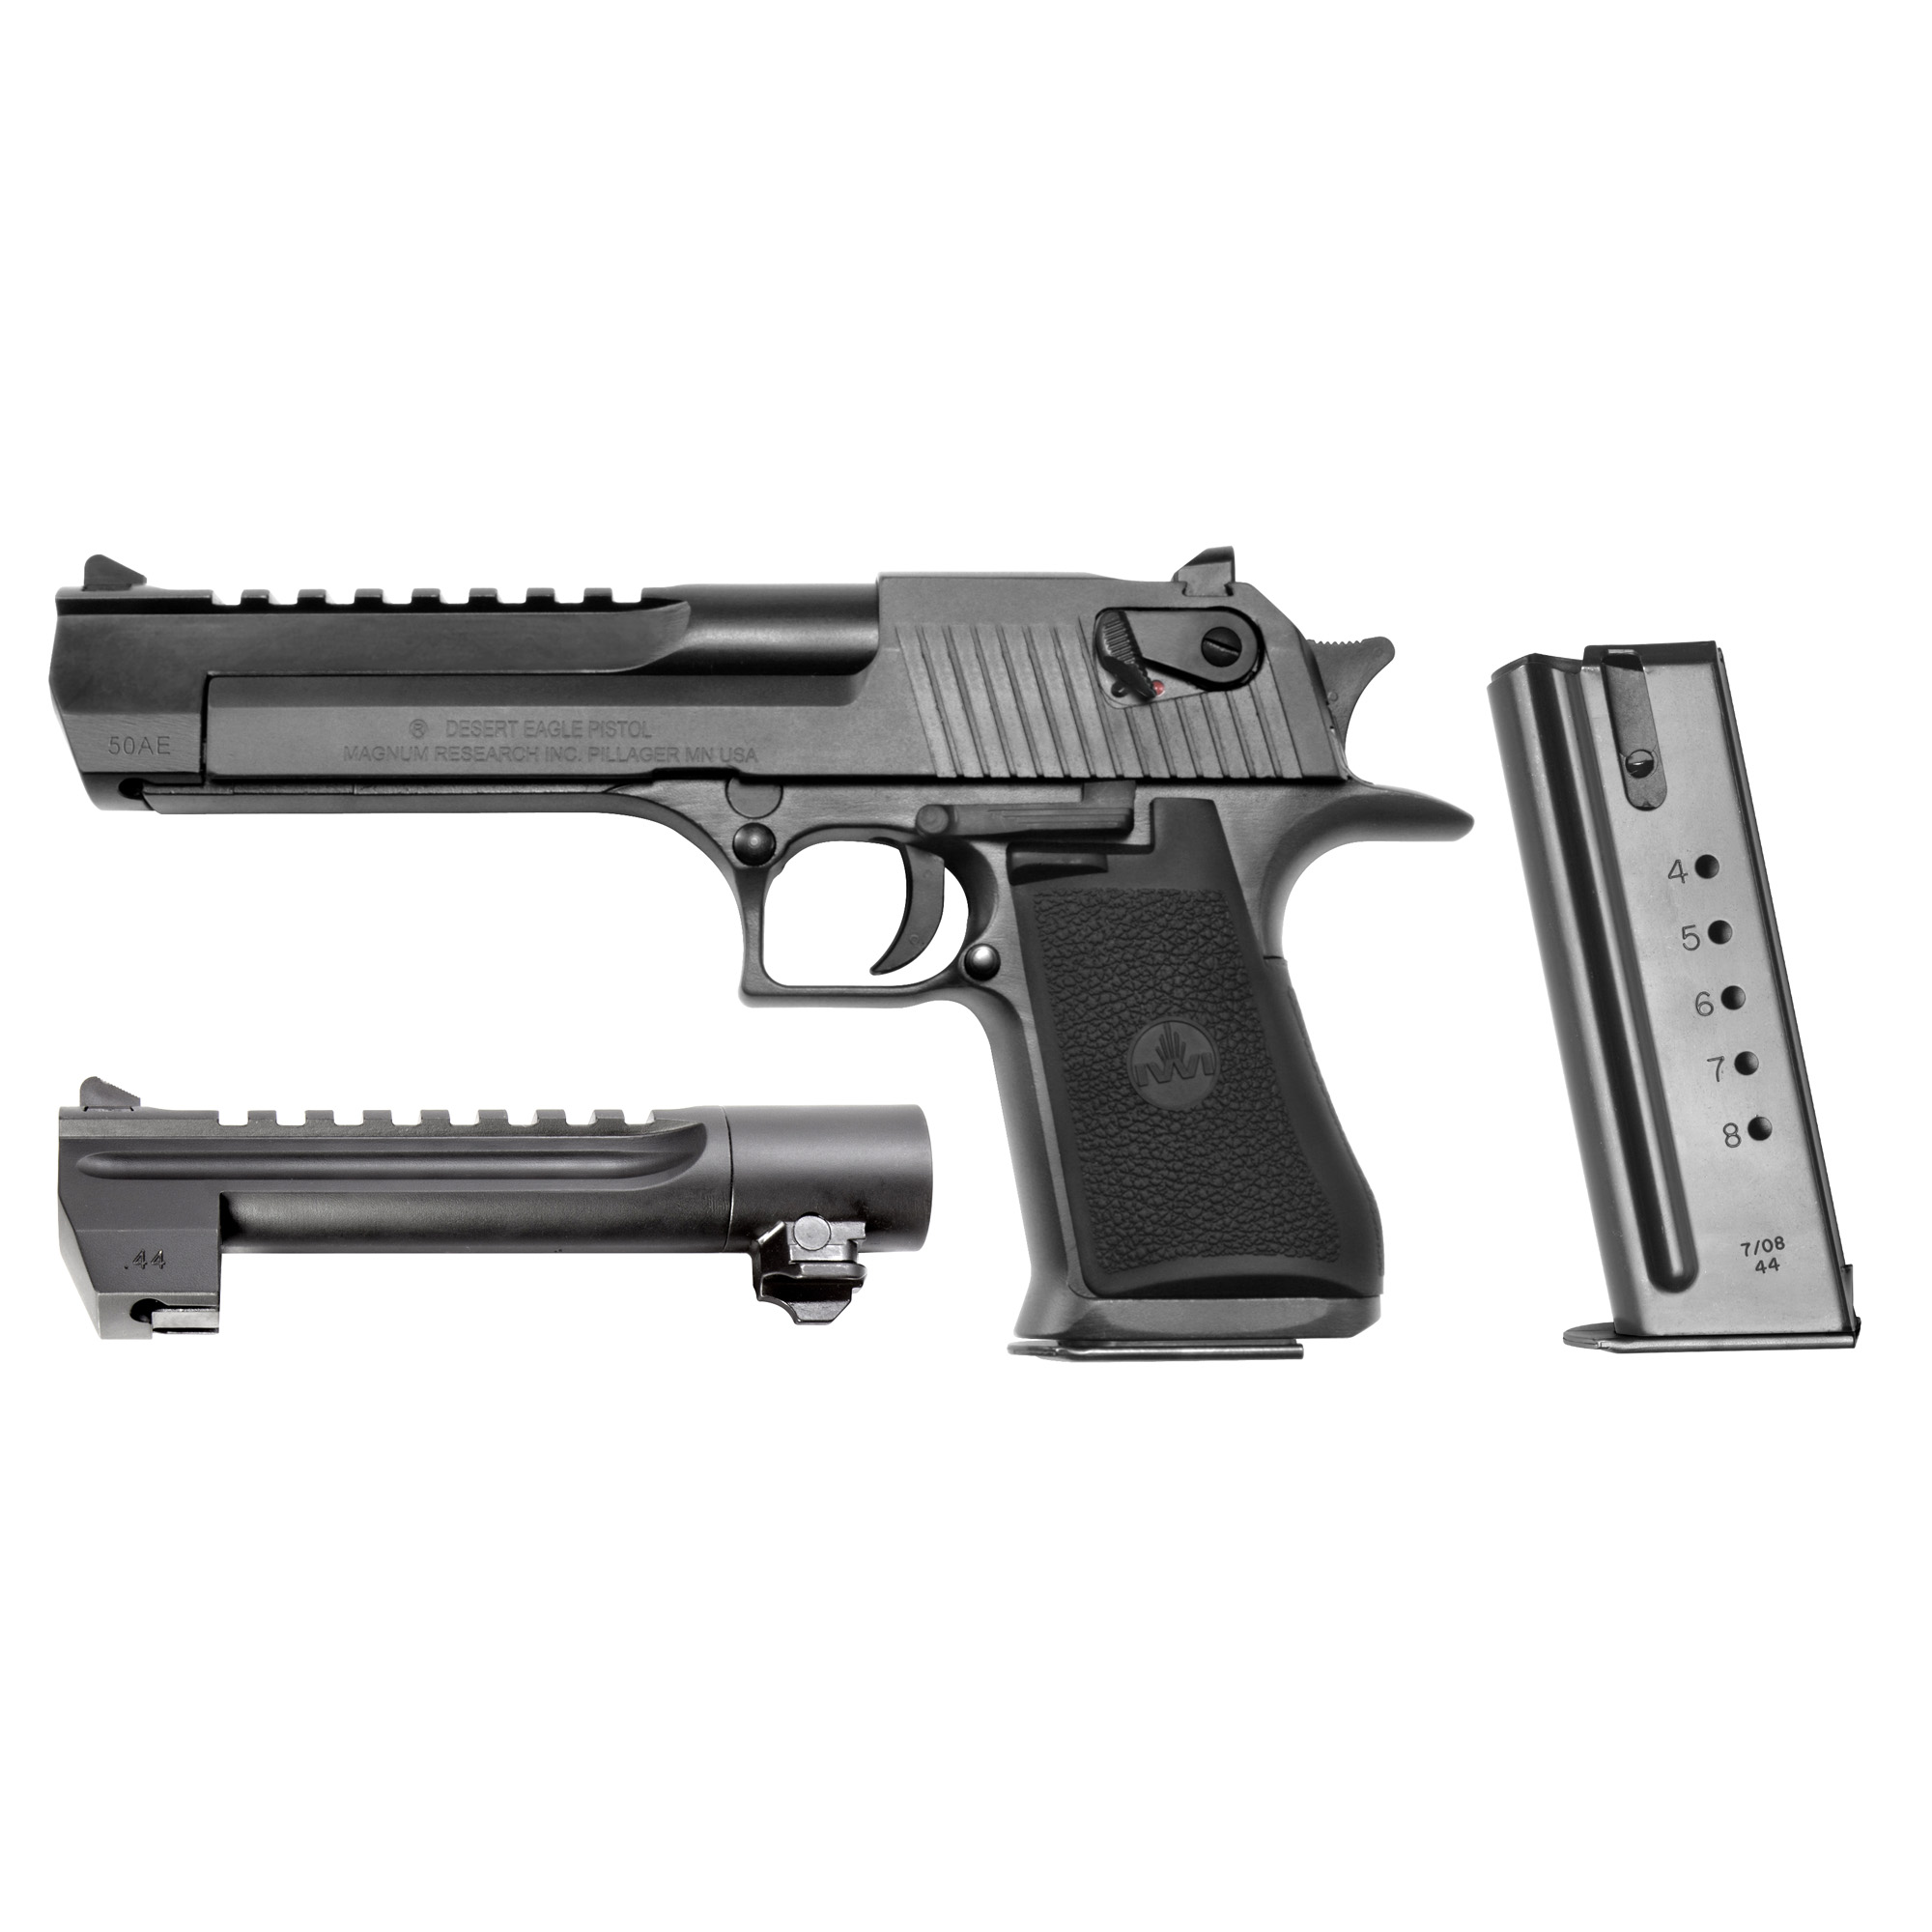 """The Desert Eagle Mark XIX"""" Model Number DE50WB6"""" features a .50 AE caliber with a 6"""" barrel"""" O/A length of 10.75"""" a slide width of 1.25"""" and a height of 6.25"""". The steel-framed pistol is manufactured in Israel and has a black oxide finish with a black barrel"""" and a combat-type fixed sight. The new combo caliber package includes a .44 Magnum caliber barrel in a black finish and a .44 Magnum magazine. This is the first time that Magnum Research has offered a combo caliber package featuring the .50 AE and the .44 Magnum calibers in one gun case. Also includes one 7-round .50 AE caliber magazine."""